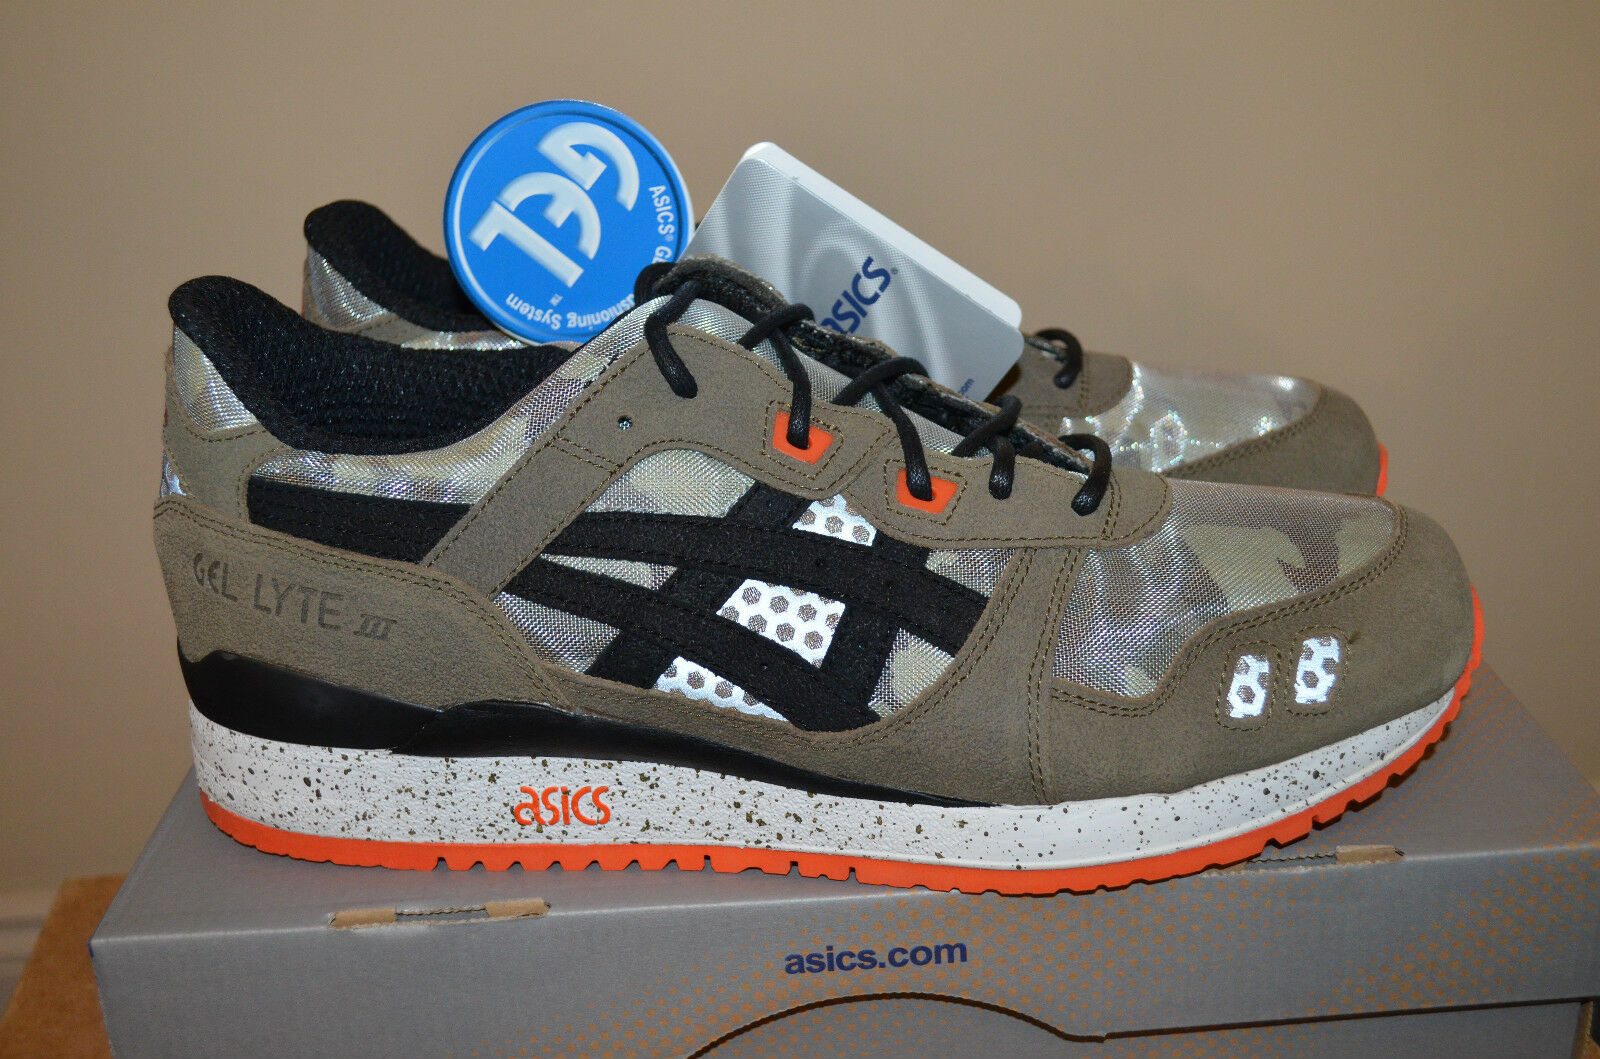 "BAIT ASICS Gel Lyte 3 III  Guardian"" Camouflage Trainers UK 10 US 11 EU 44 BNIB"